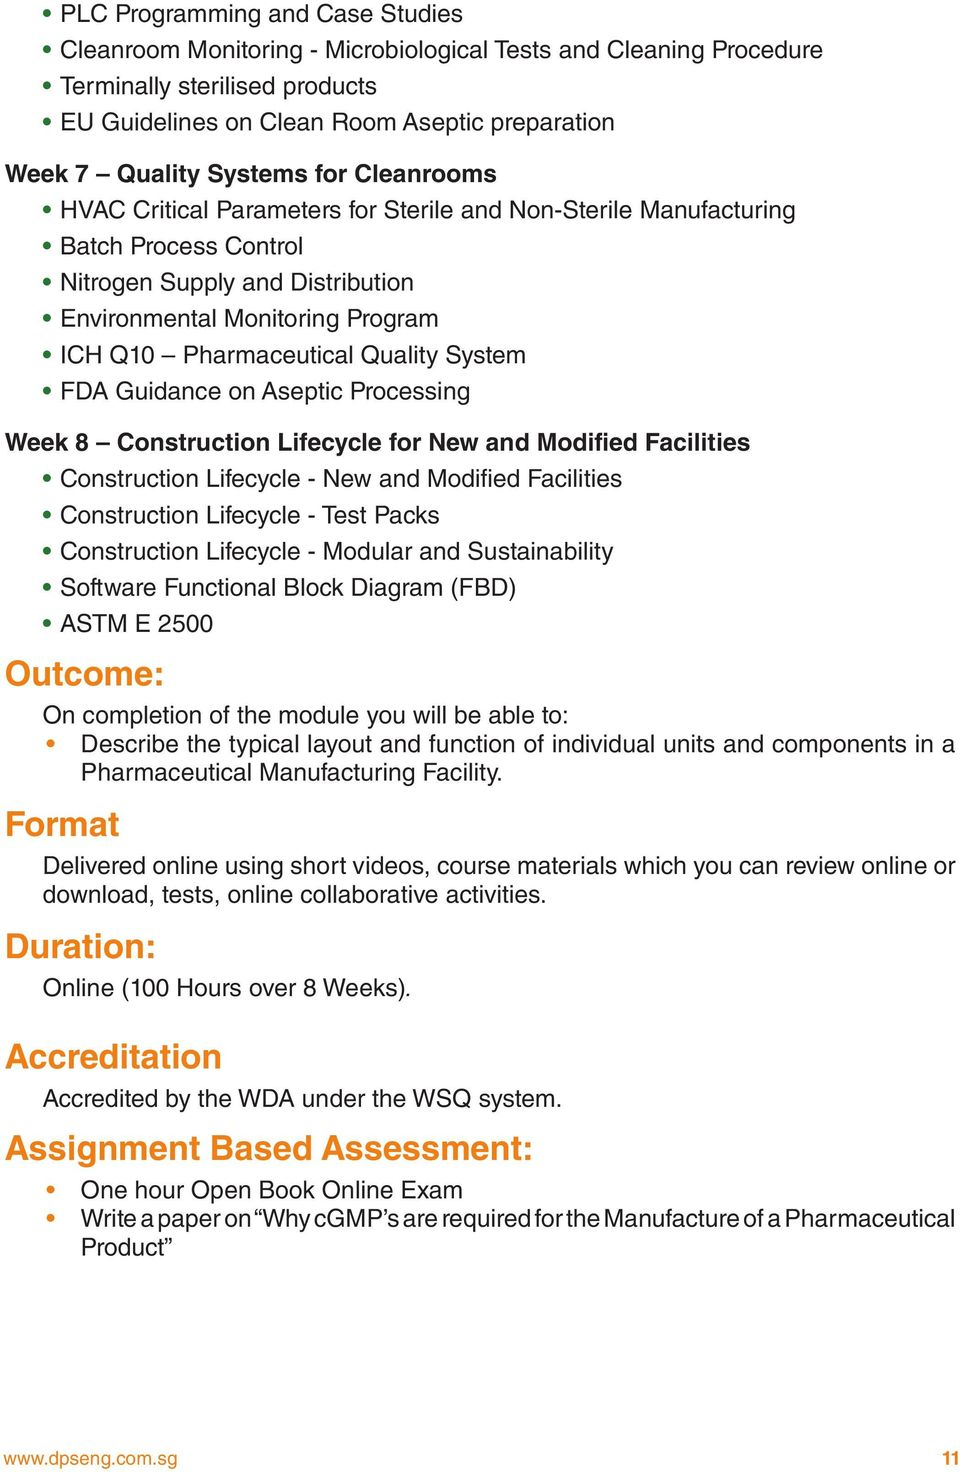 principles of pharmaceutical facility design full time part time